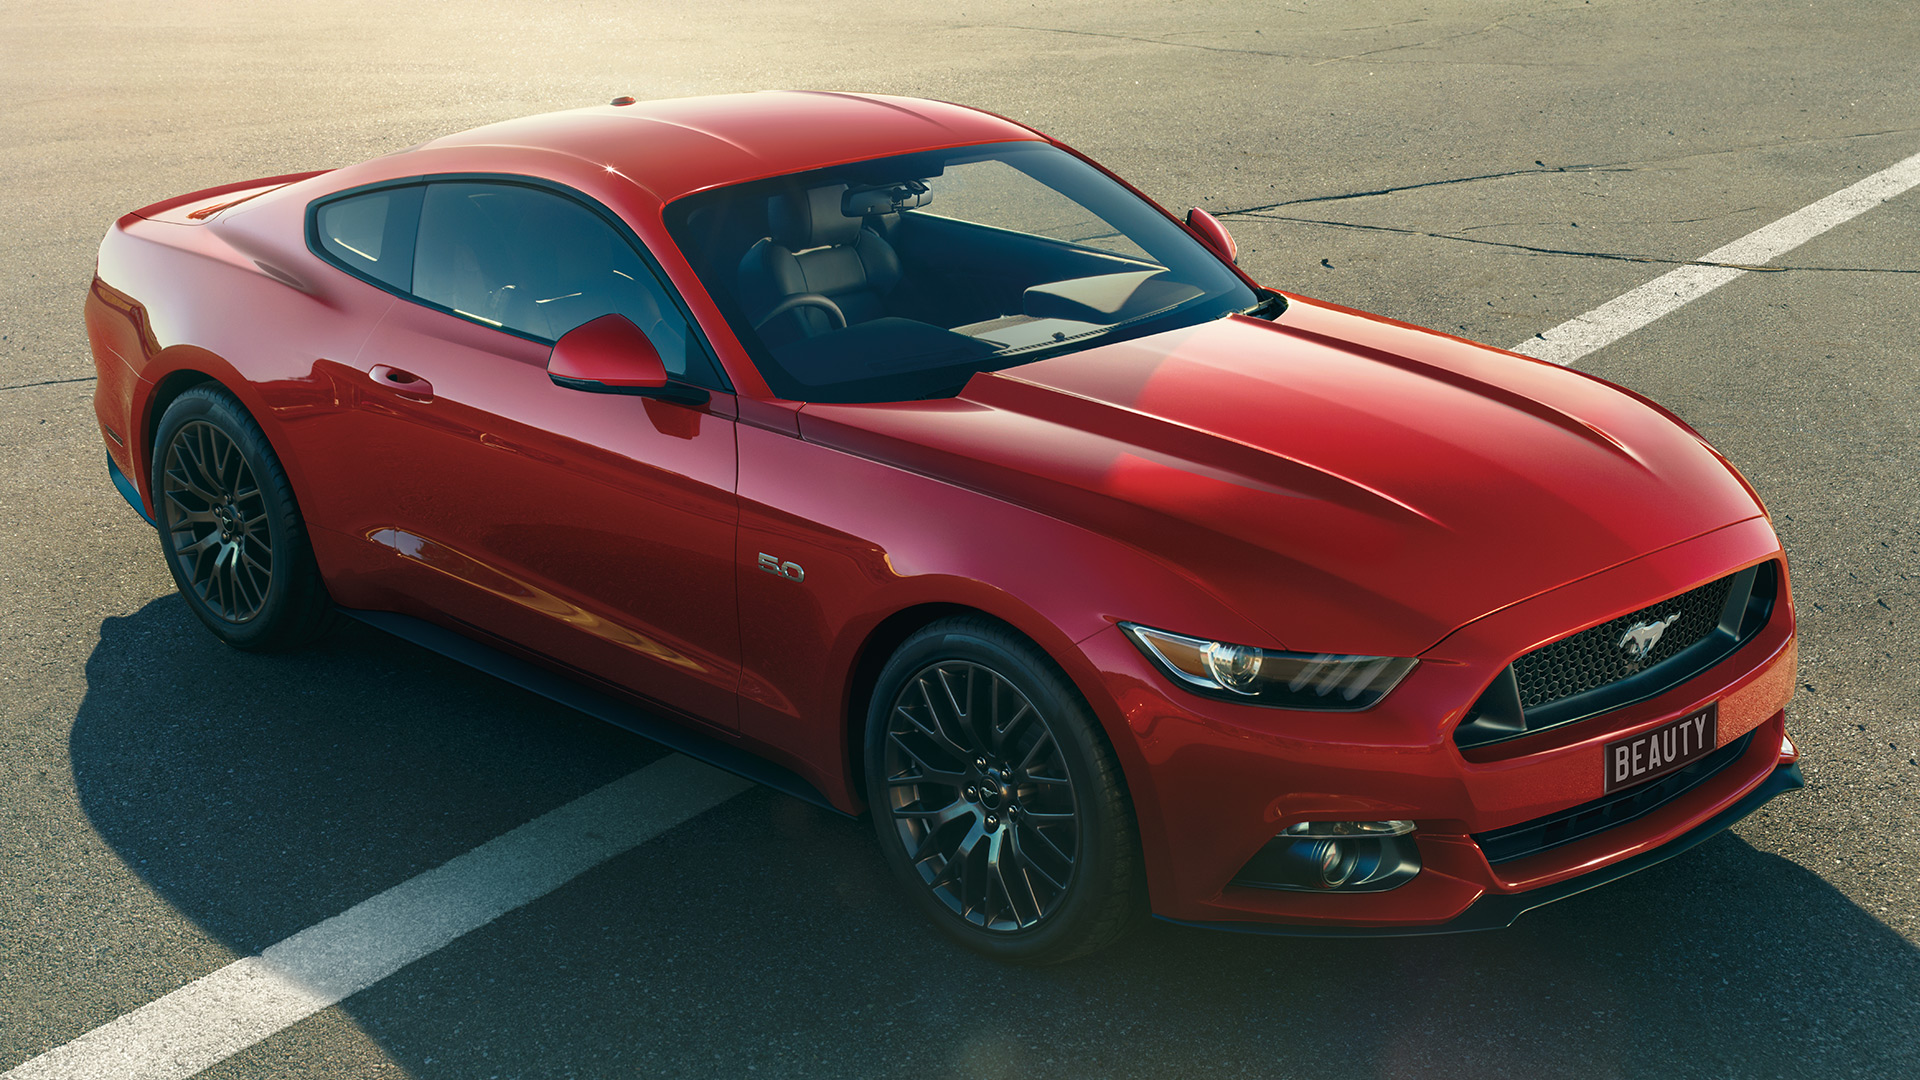 The Beauty - 2020 V8 5.0L Ford Mustang Fastback